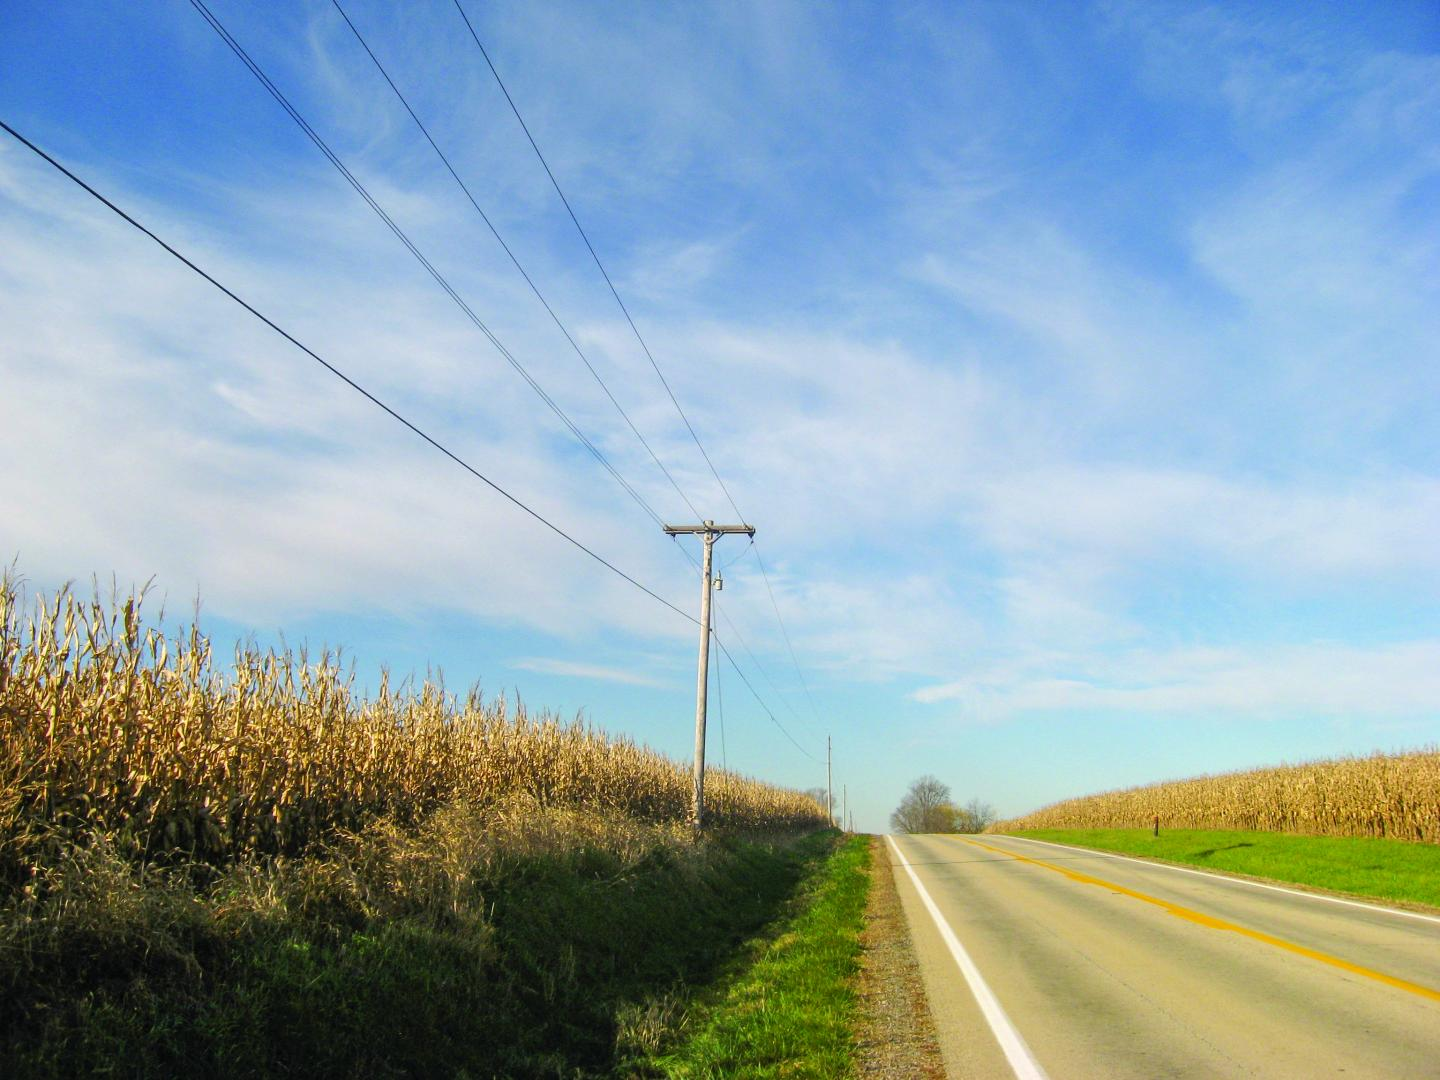 Power lines and corn fields